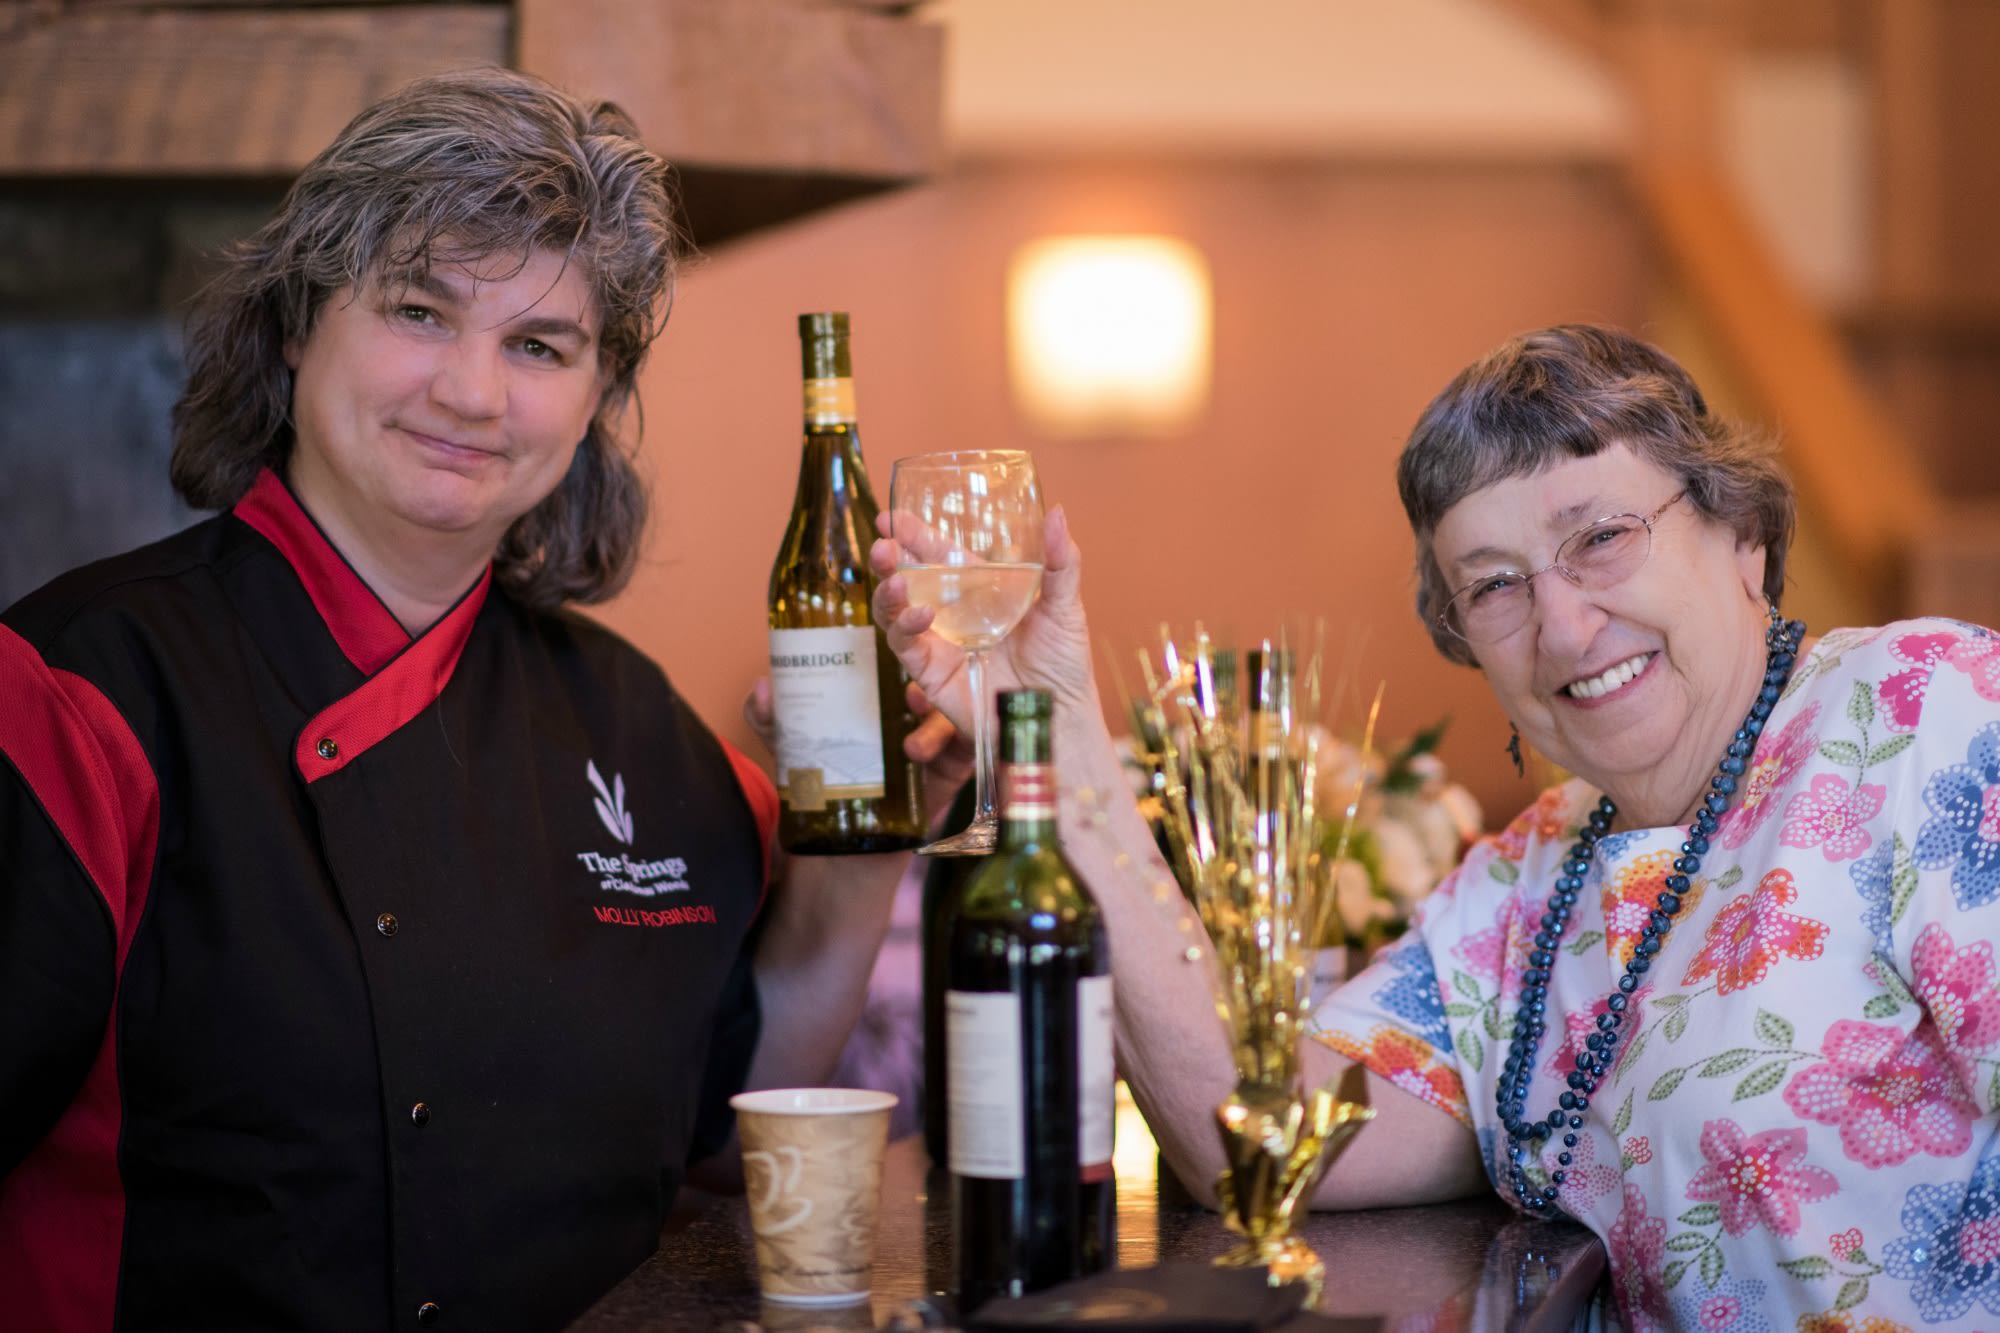 Cheers to living the good life at our senior living facility in Milwaukie, OR